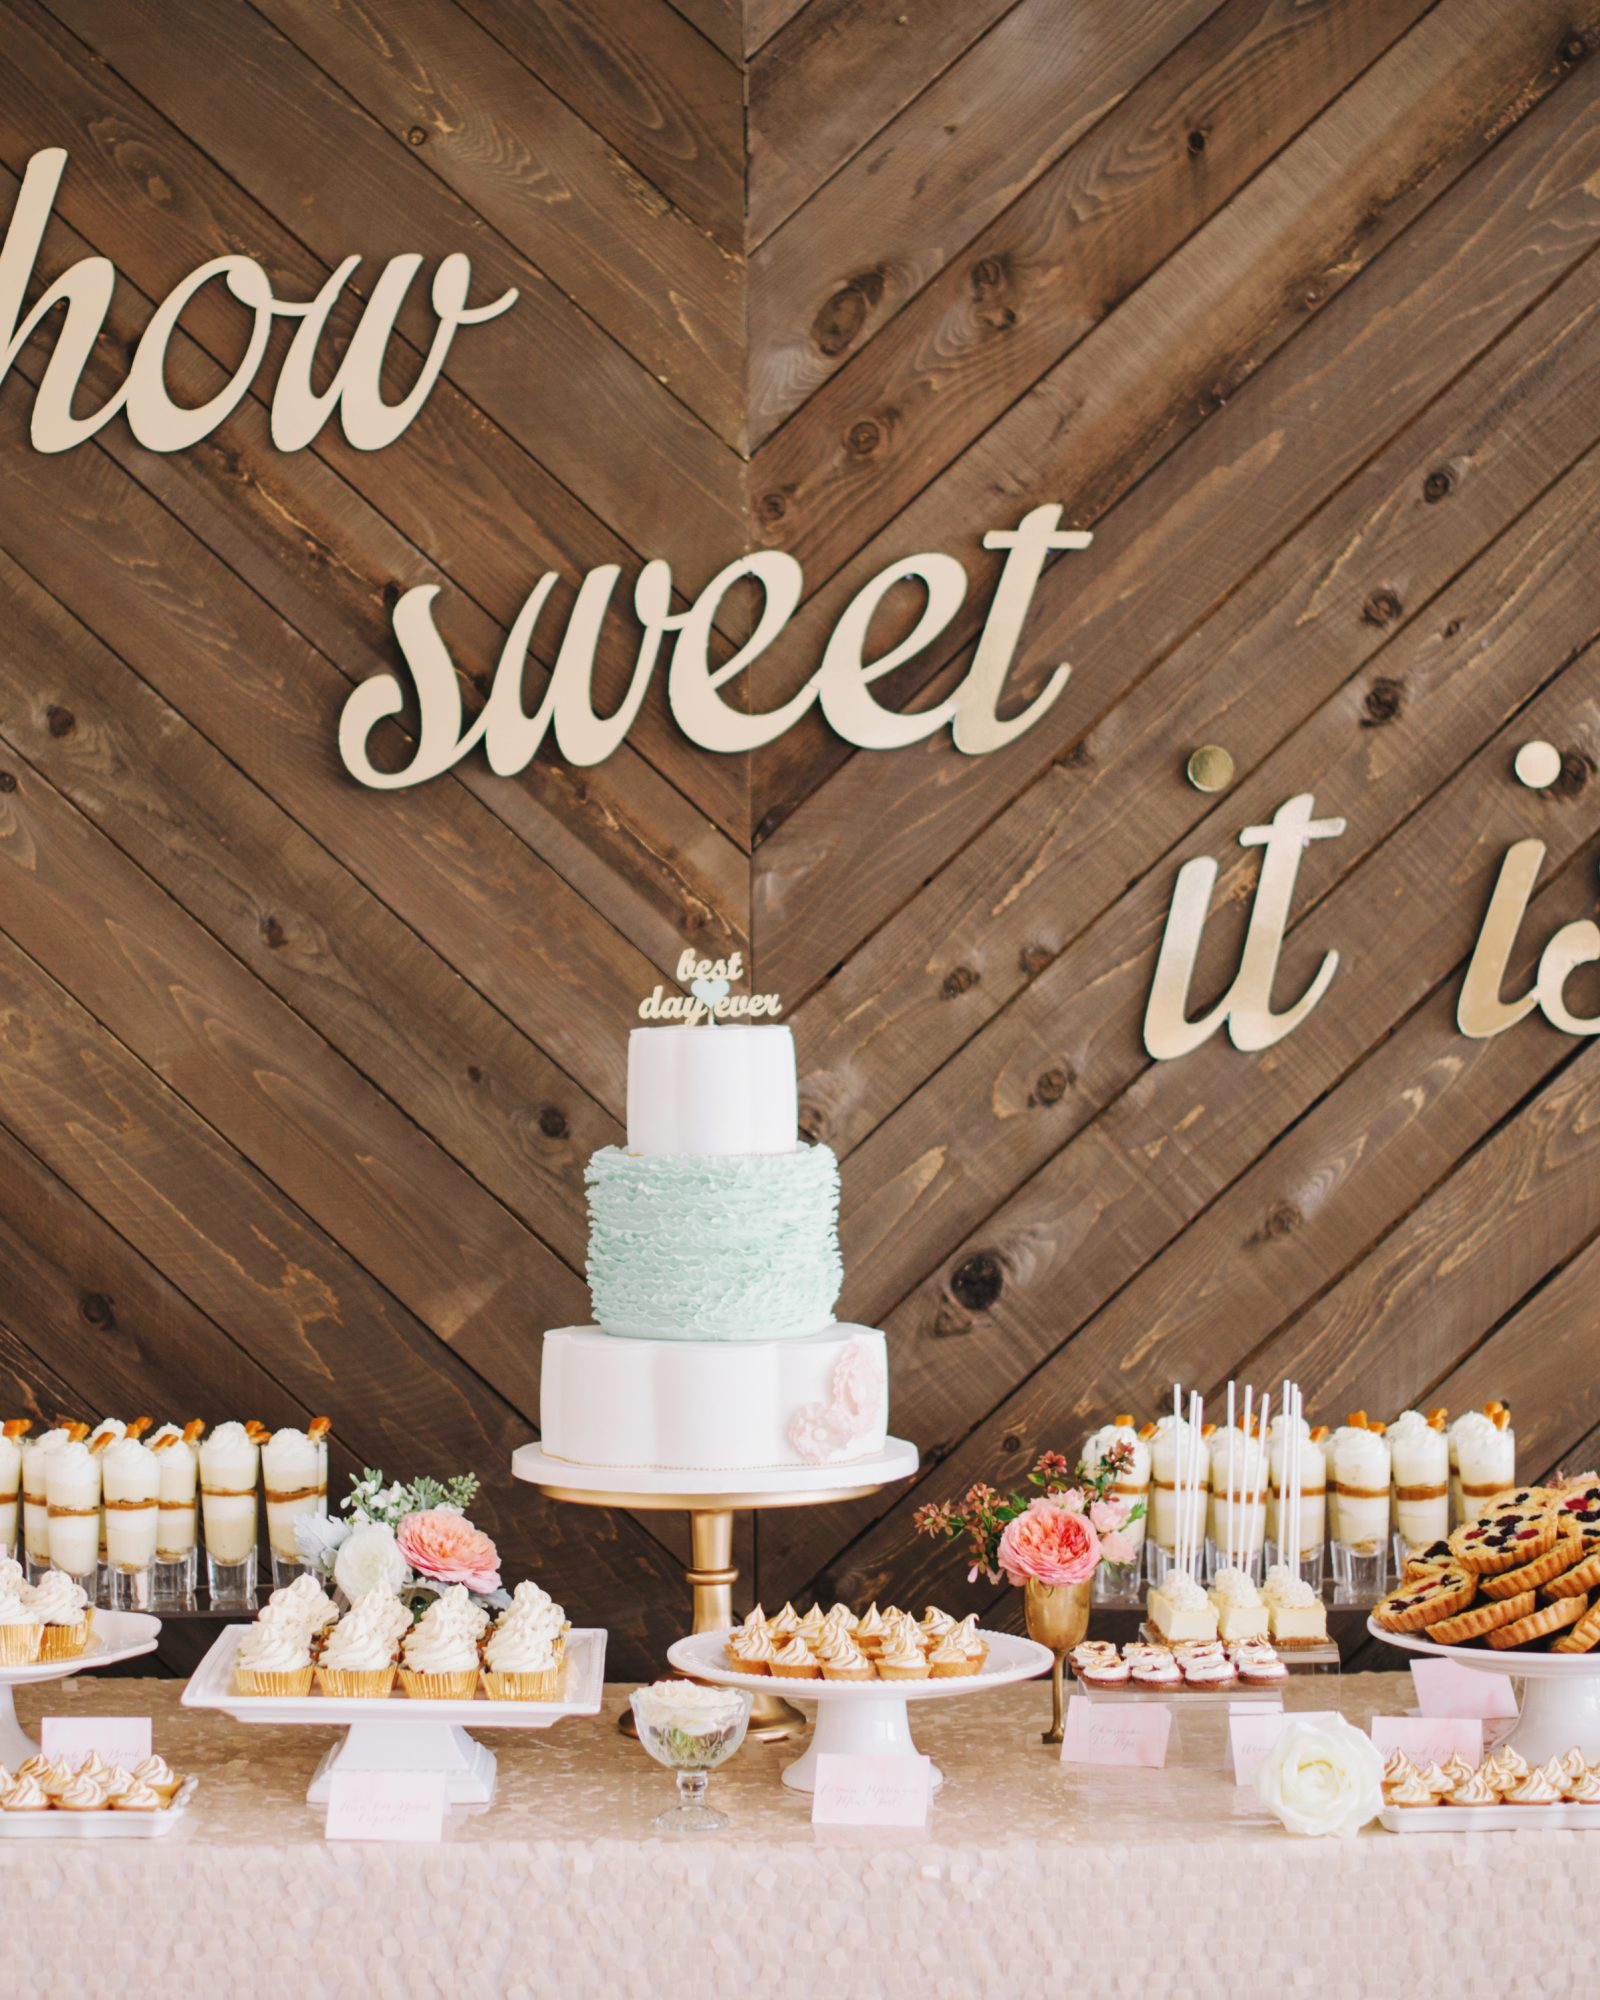 alex-brandon-wedding-desserttable-040-s111338-0714.jpg